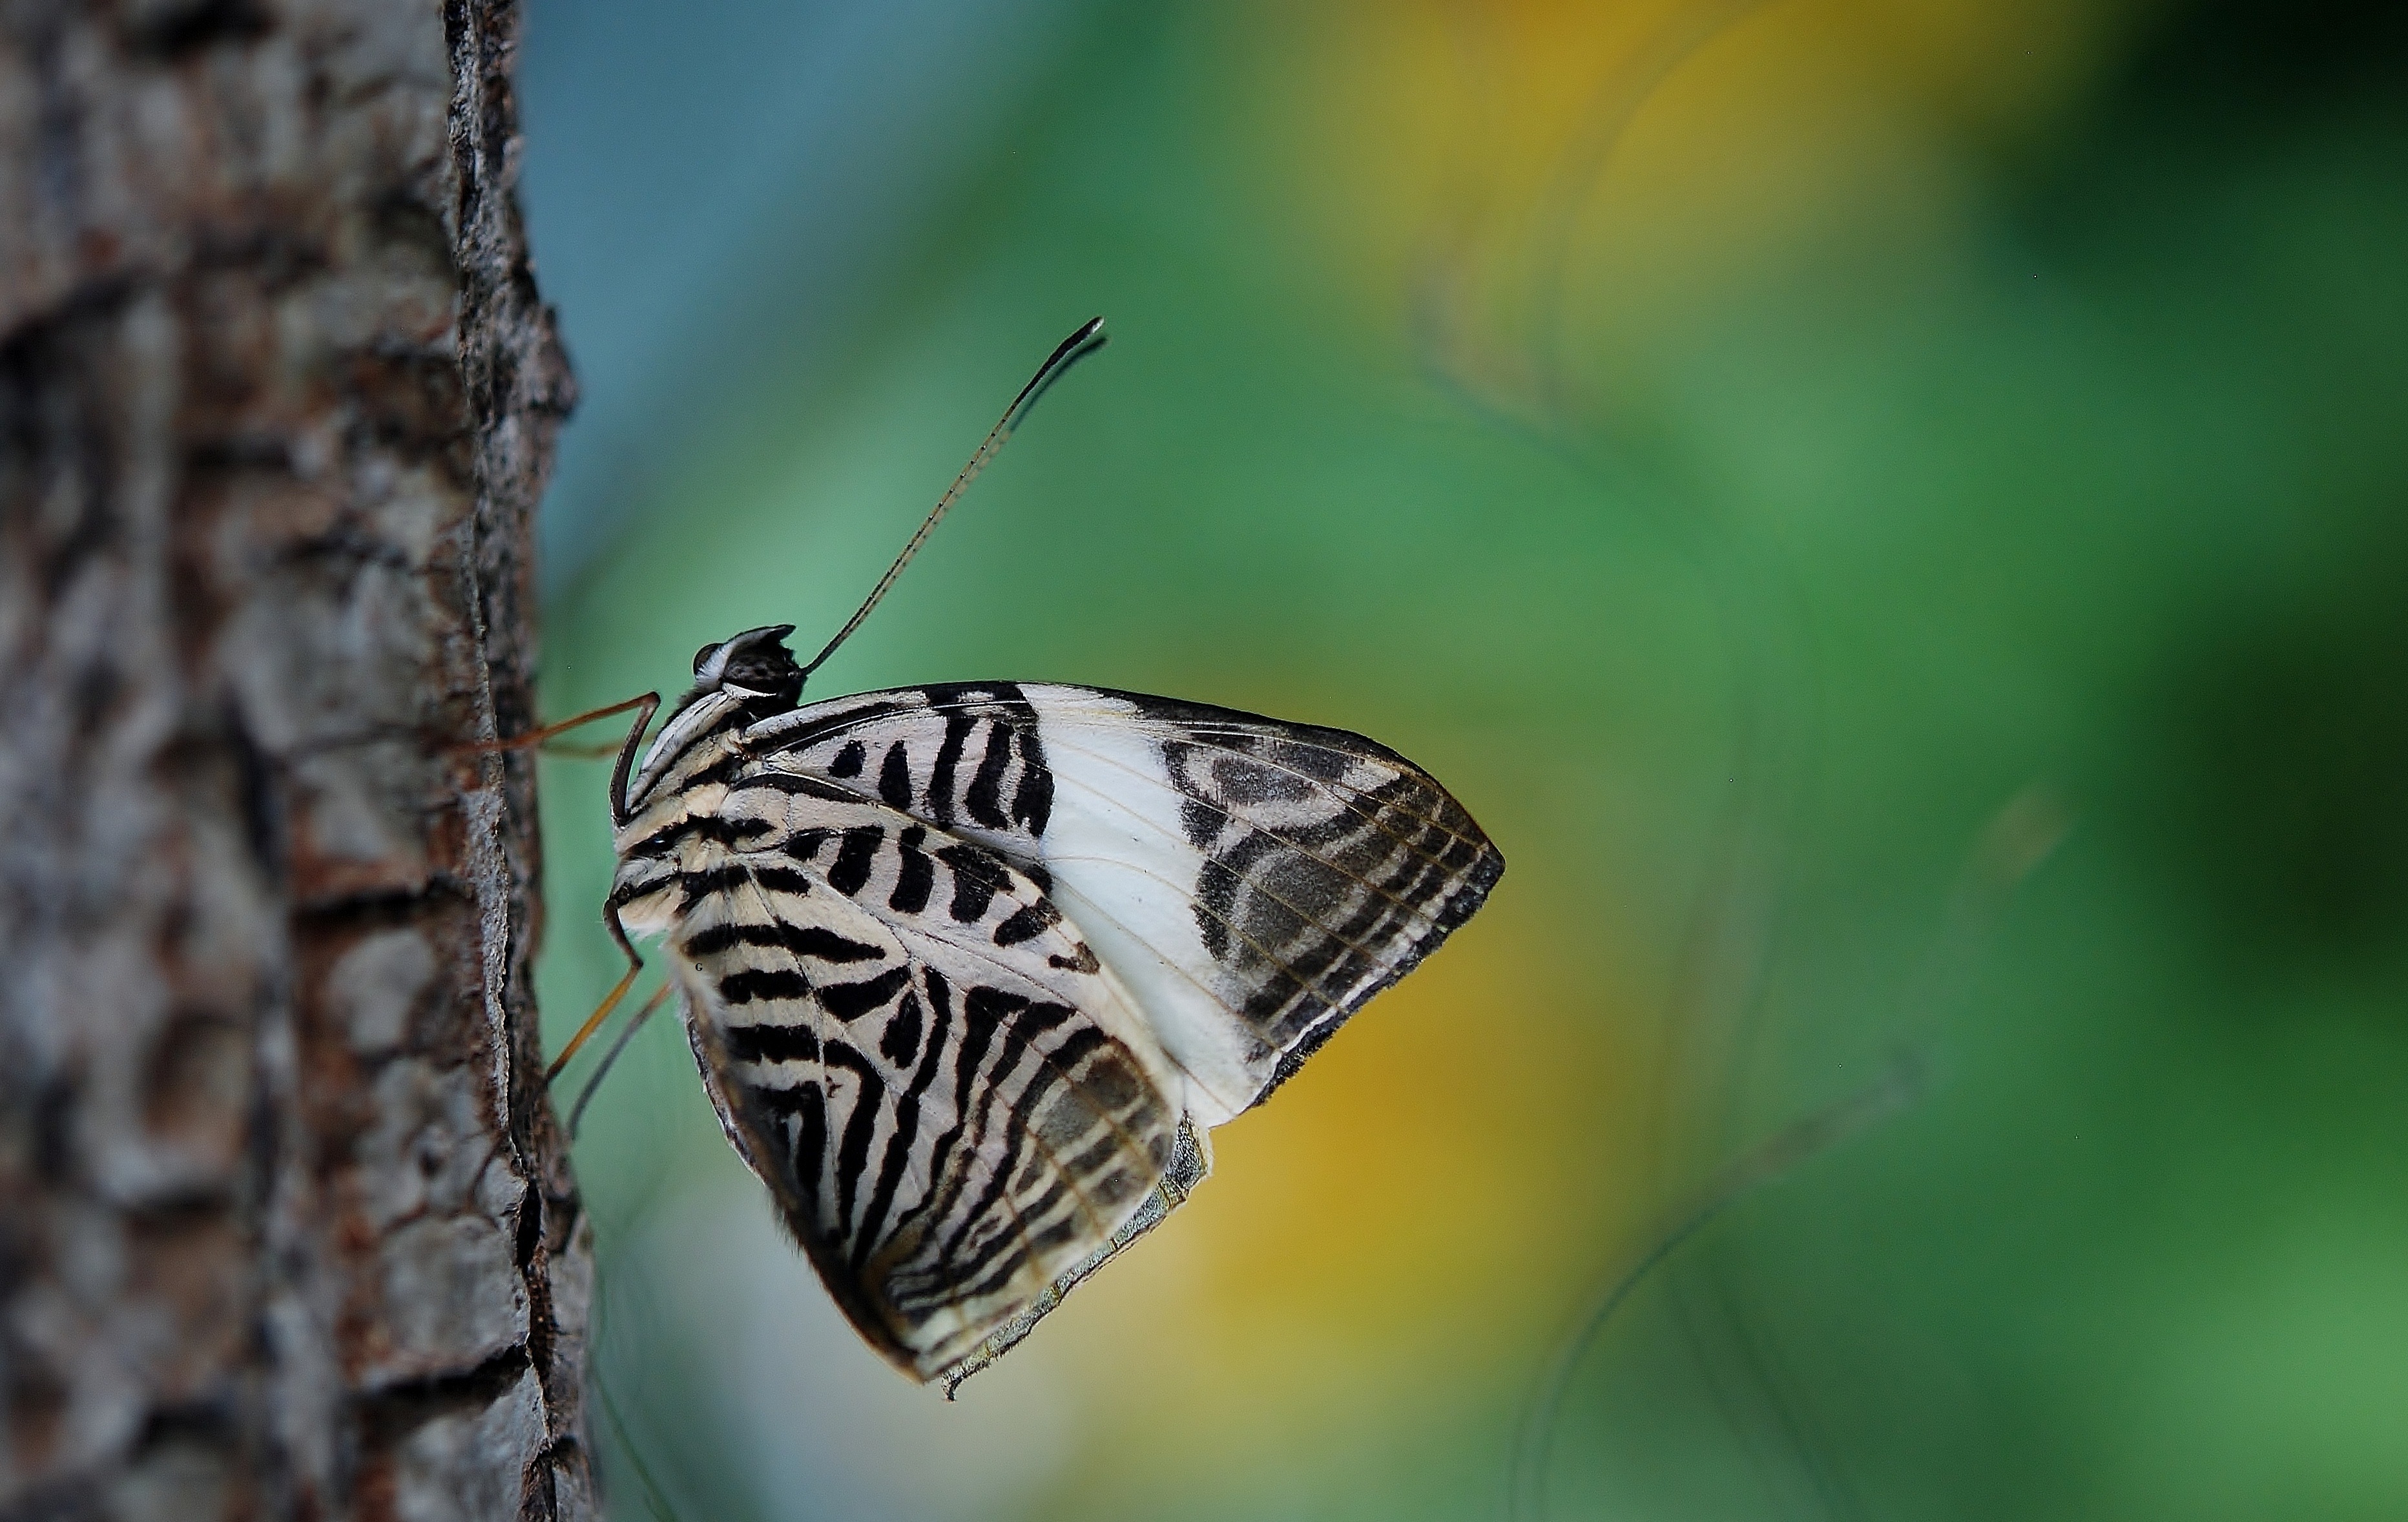 free stock photo of butterfly close up hd wallpaper